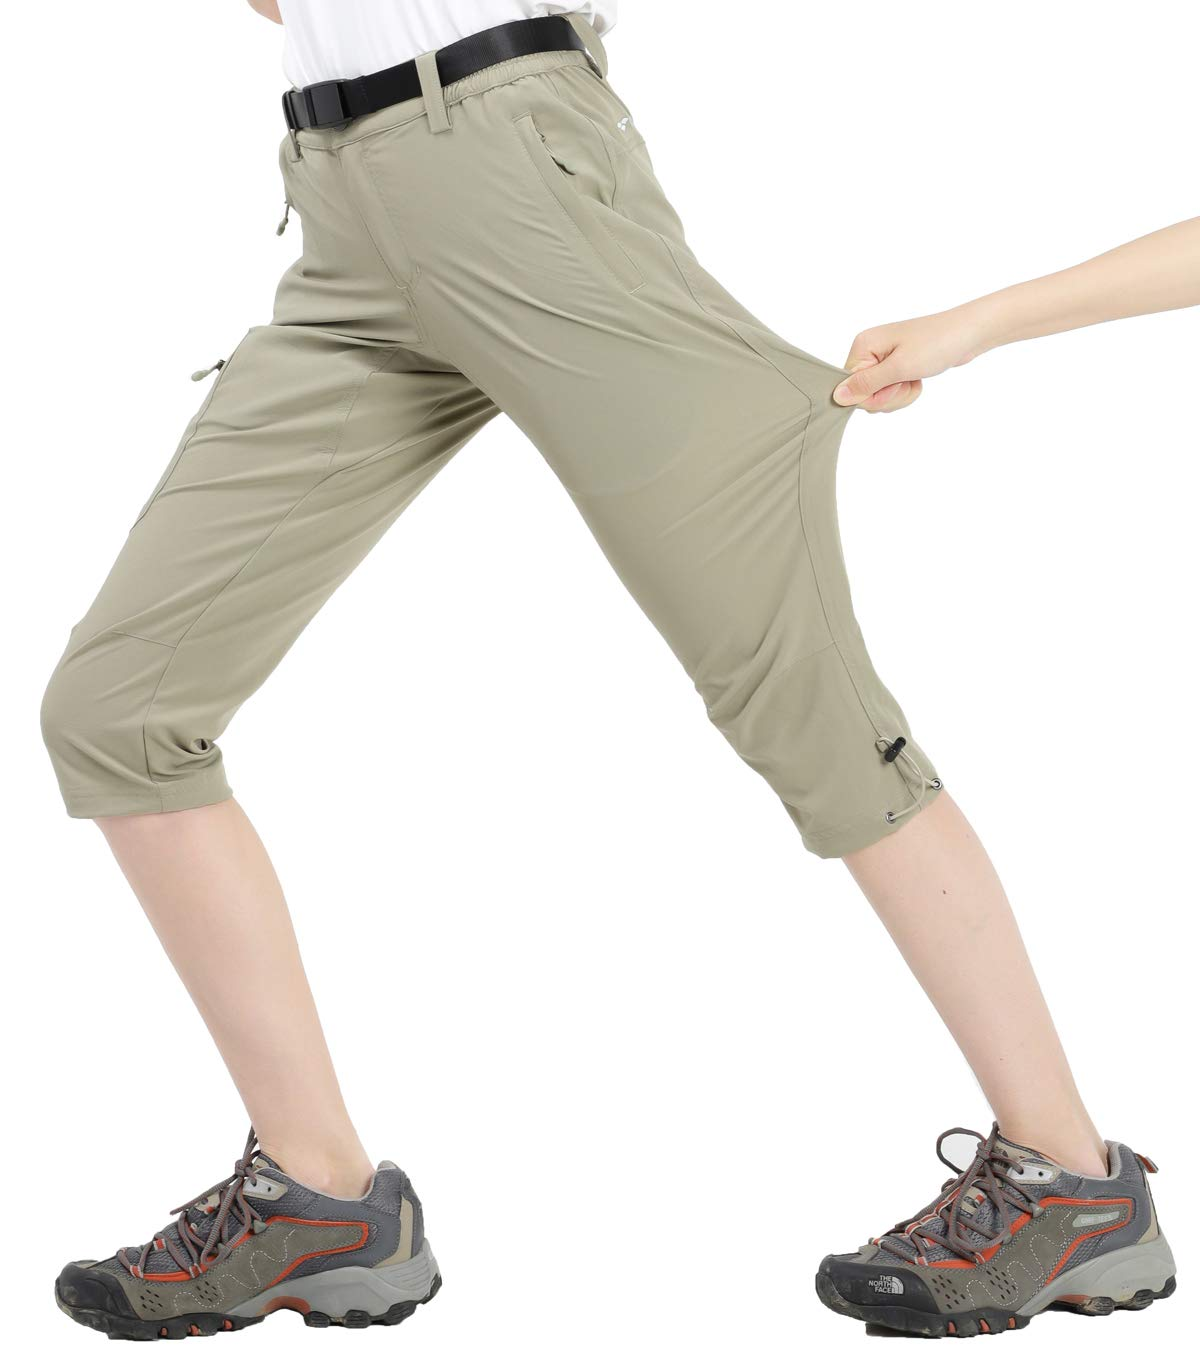 MIER Women's Quick Dry Outdoor Capri Pants Stretch Hiking Cargo Pants with 4 Pockets, Water Resistant and Lightweight